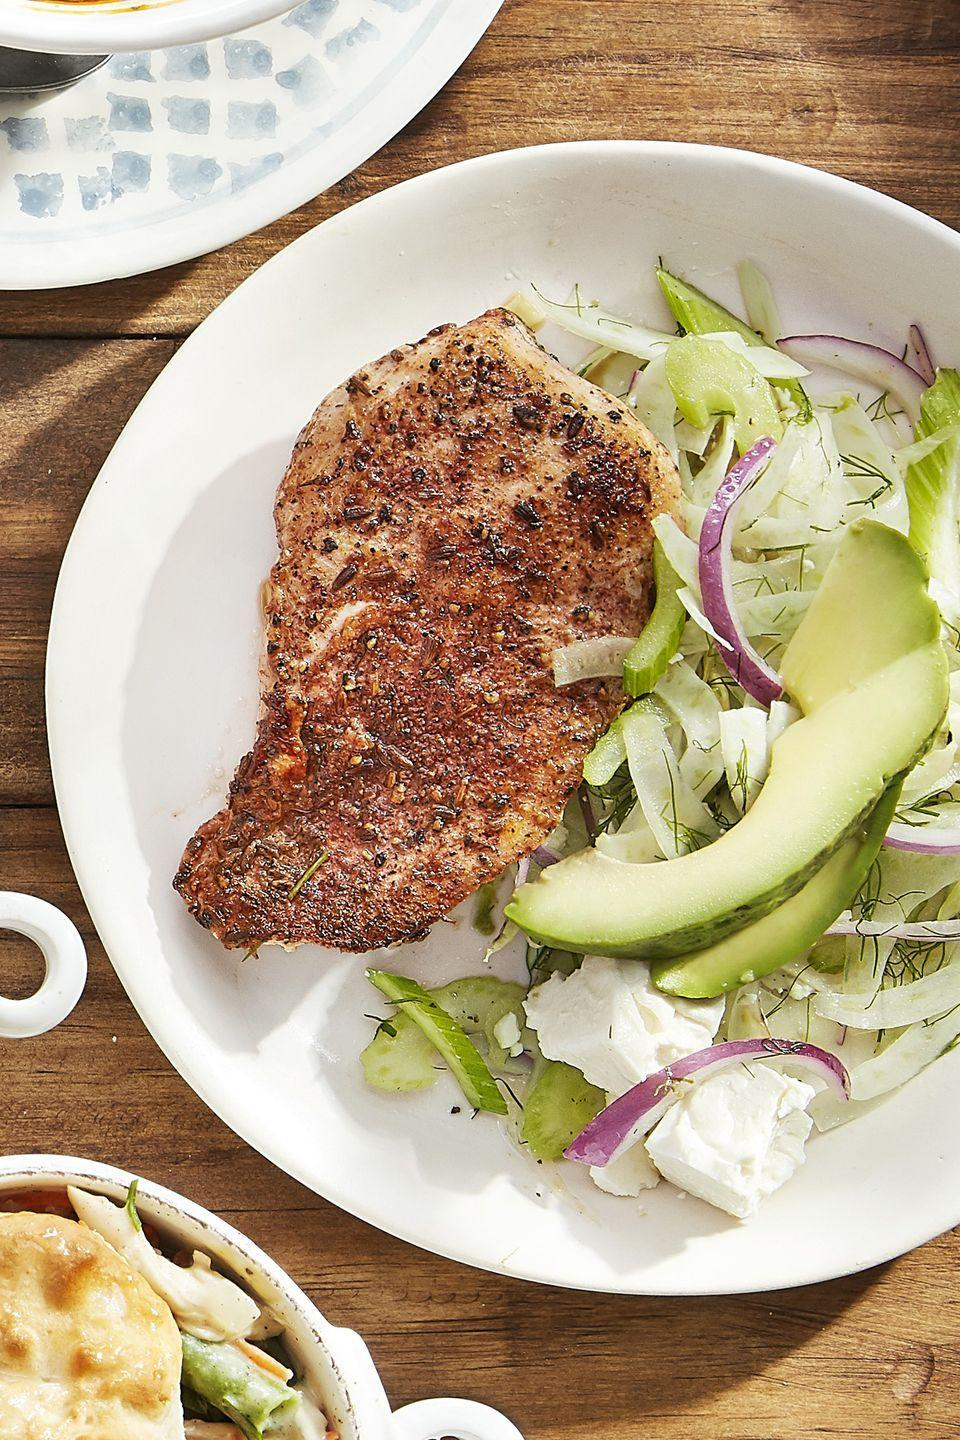 "<p>A fennel, avocado, and red onion slaw lightens up smoky chicken cutlets.</p><p><strong><a href=""https://www.countryliving.com/food-drinks/recipes/a44250/blackened-chicken-fennel-slaw-recipe/"" rel=""nofollow noopener"" target=""_blank"" data-ylk=""slk:Get the recipe"" class=""link rapid-noclick-resp"">Get the recipe</a>.</strong><br></p><p><a class=""link rapid-noclick-resp"" href=""https://www.amazon.com/Corelle-Square-Simple-Lines-Lunch/dp/B008T2MSTW?tag=syn-yahoo-20&ascsubtag=%5Bartid%7C10050.g.648%5Bsrc%7Cyahoo-us"" rel=""nofollow noopener"" target=""_blank"" data-ylk=""slk:SHOP PLATES"">SHOP PLATES</a></p>"